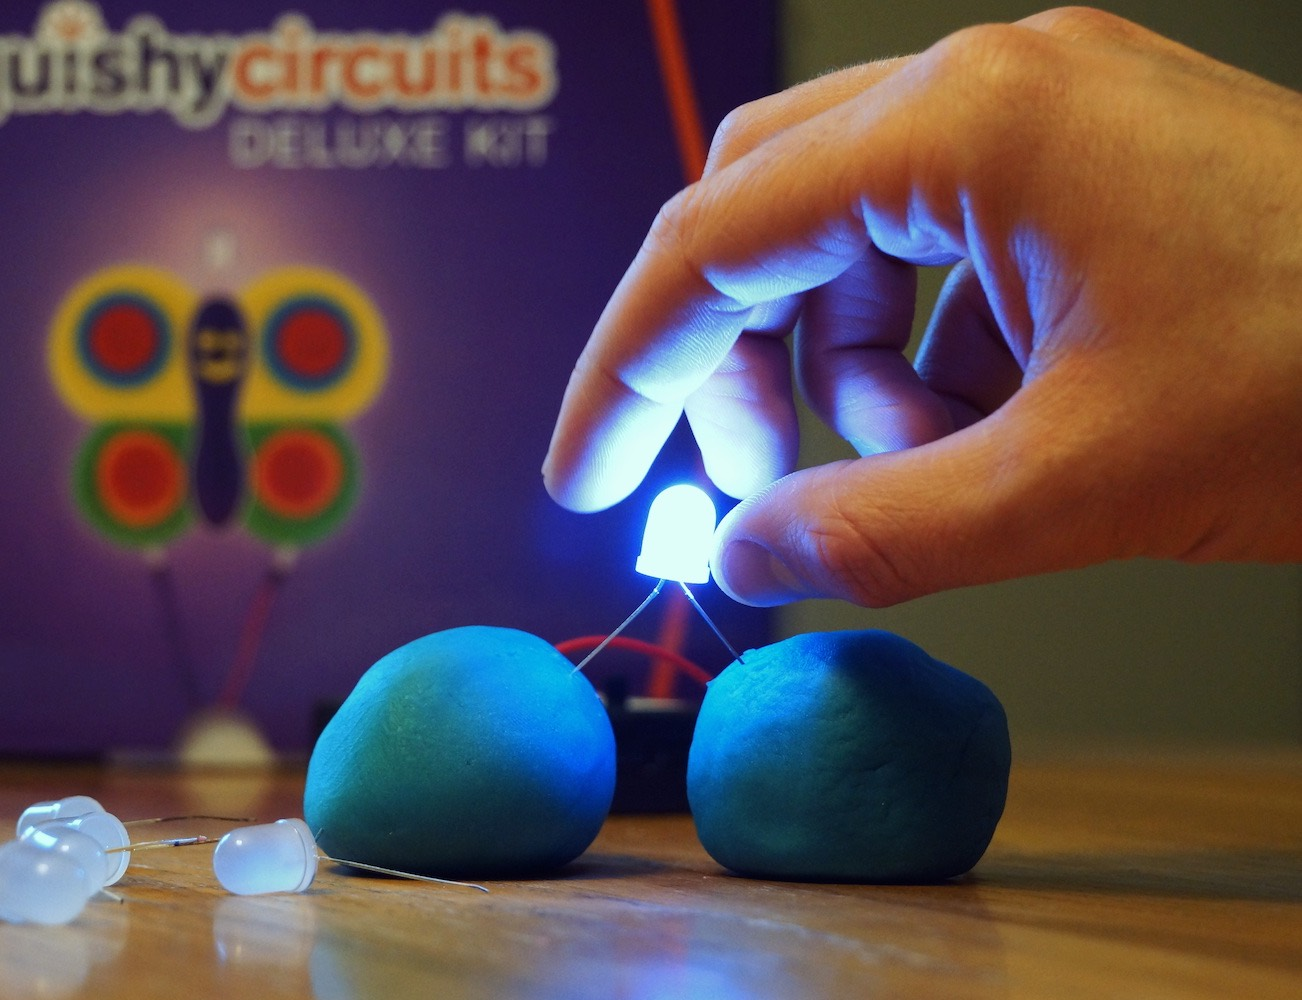 Squishy+Circuits+Kits